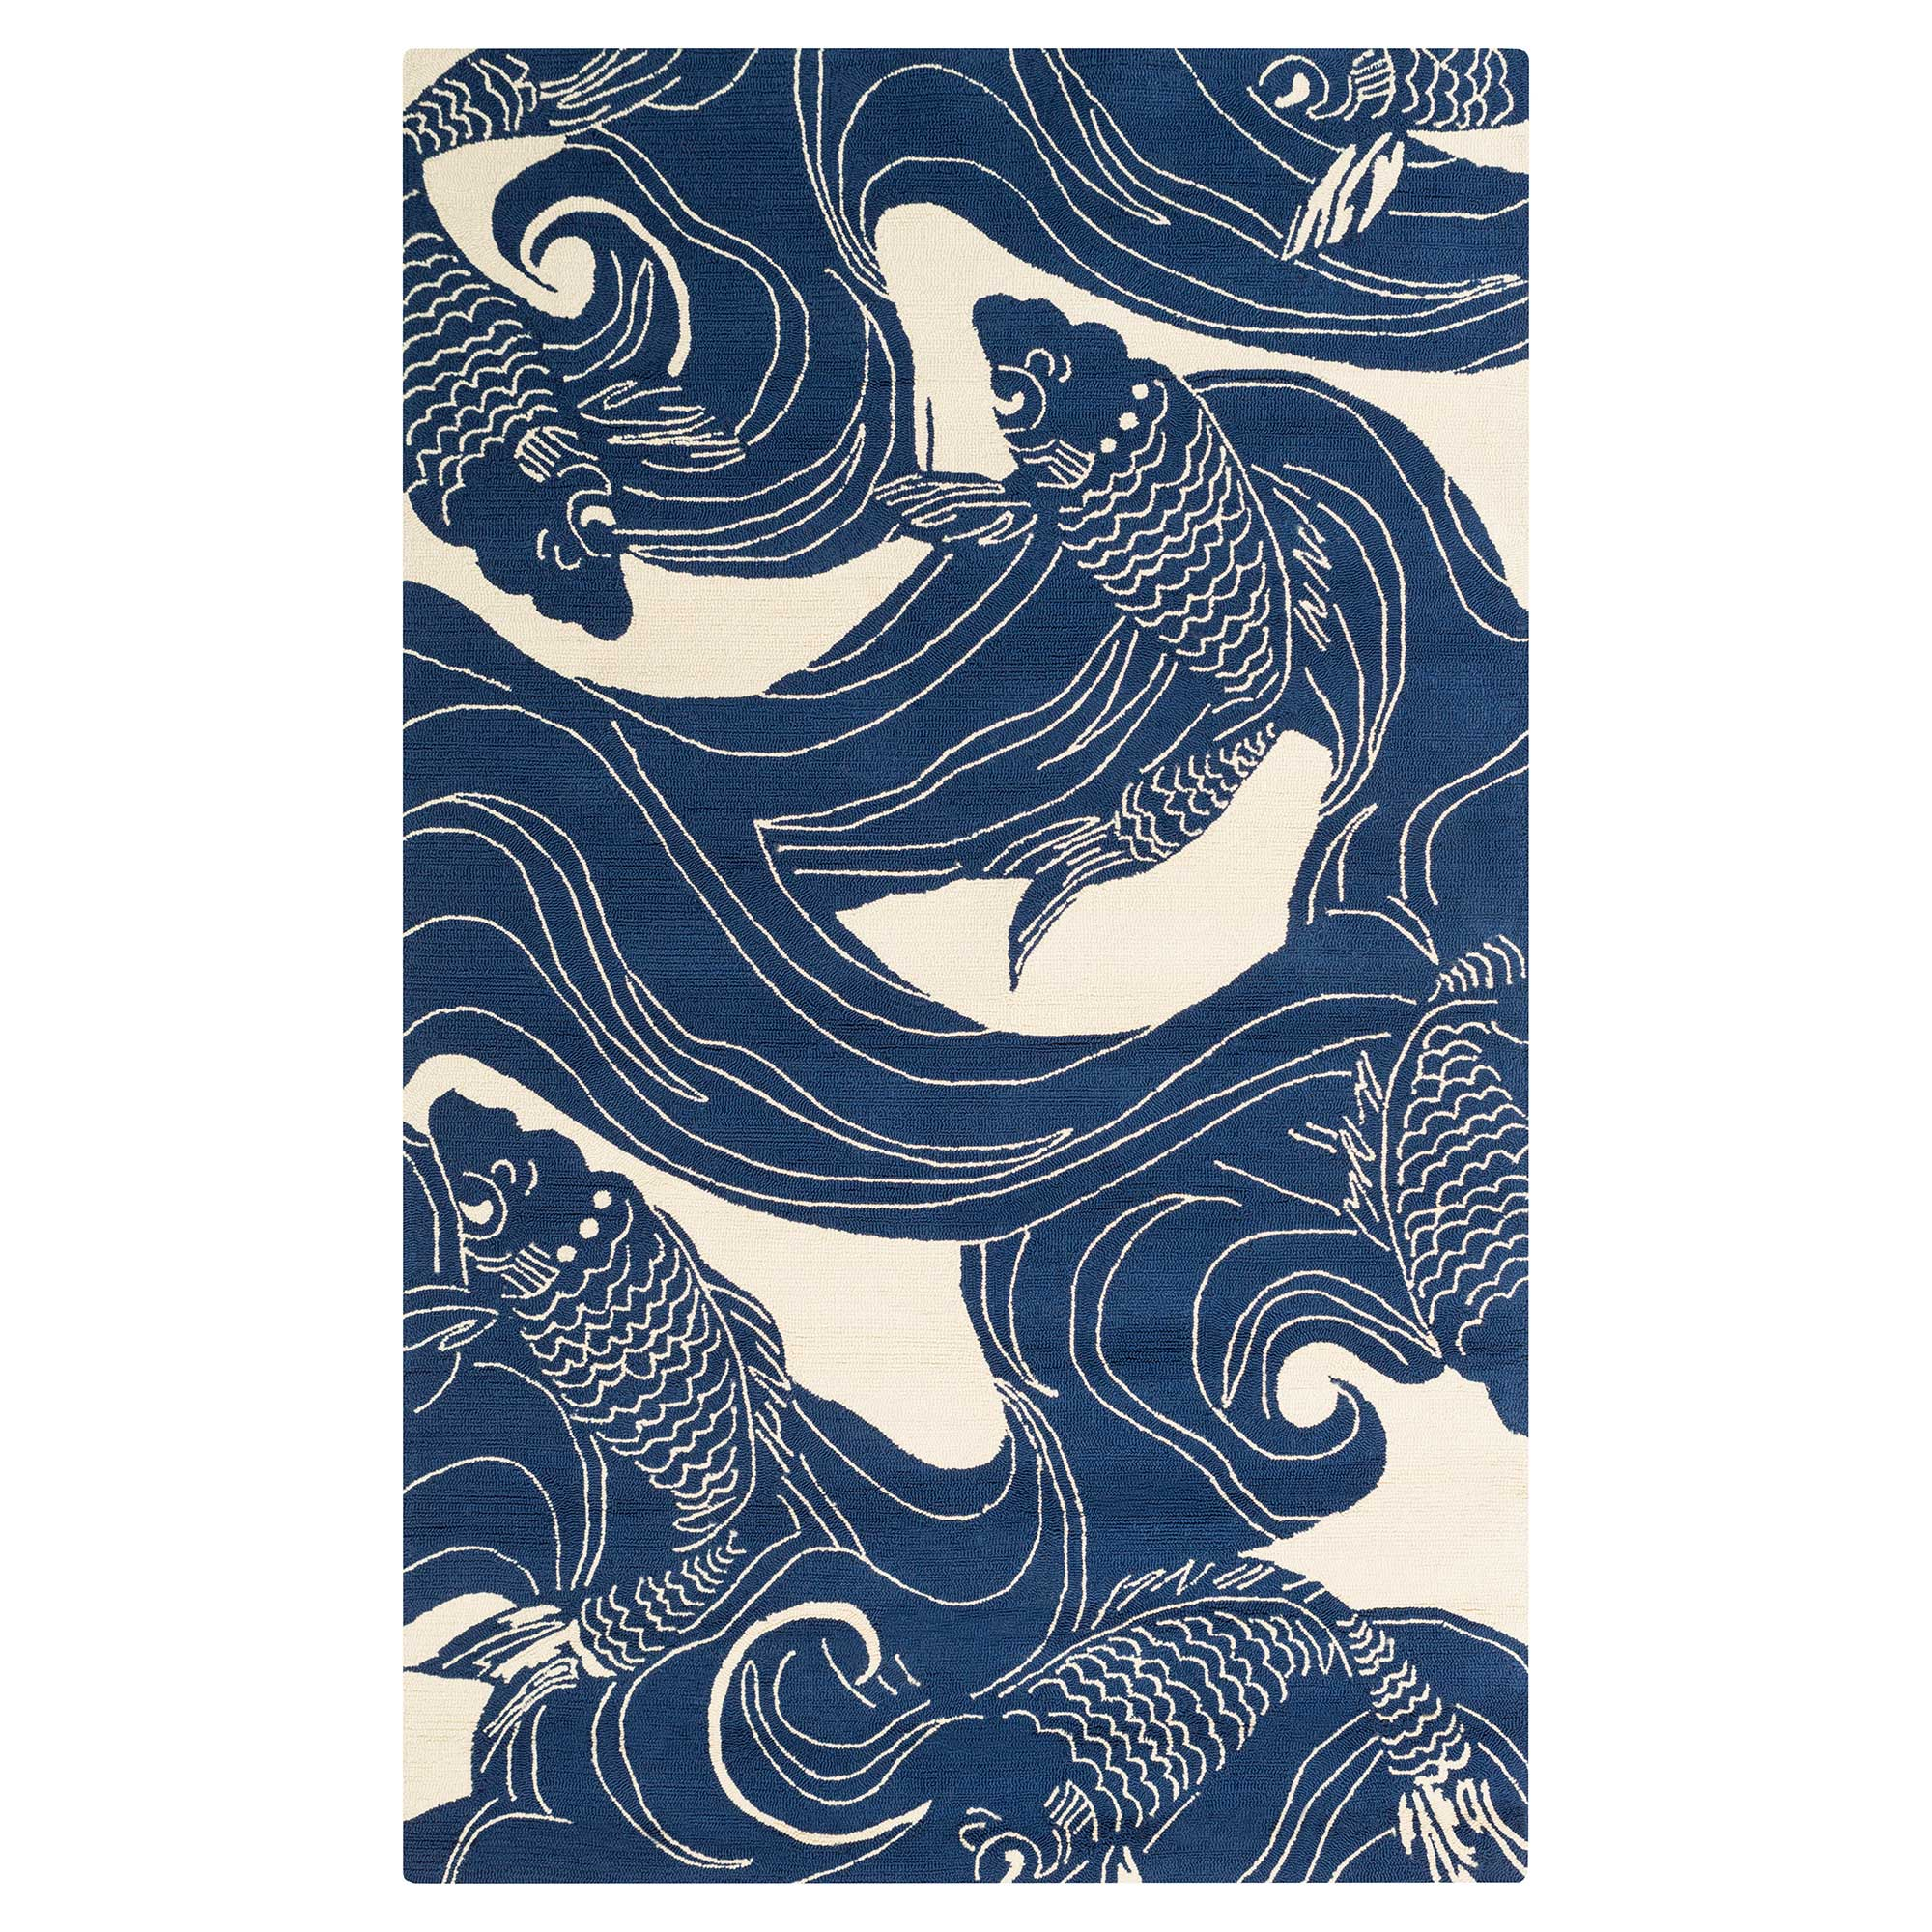 Kana Global Coastal Blue Ocean Koi Outdoor Rug - 3'x5'